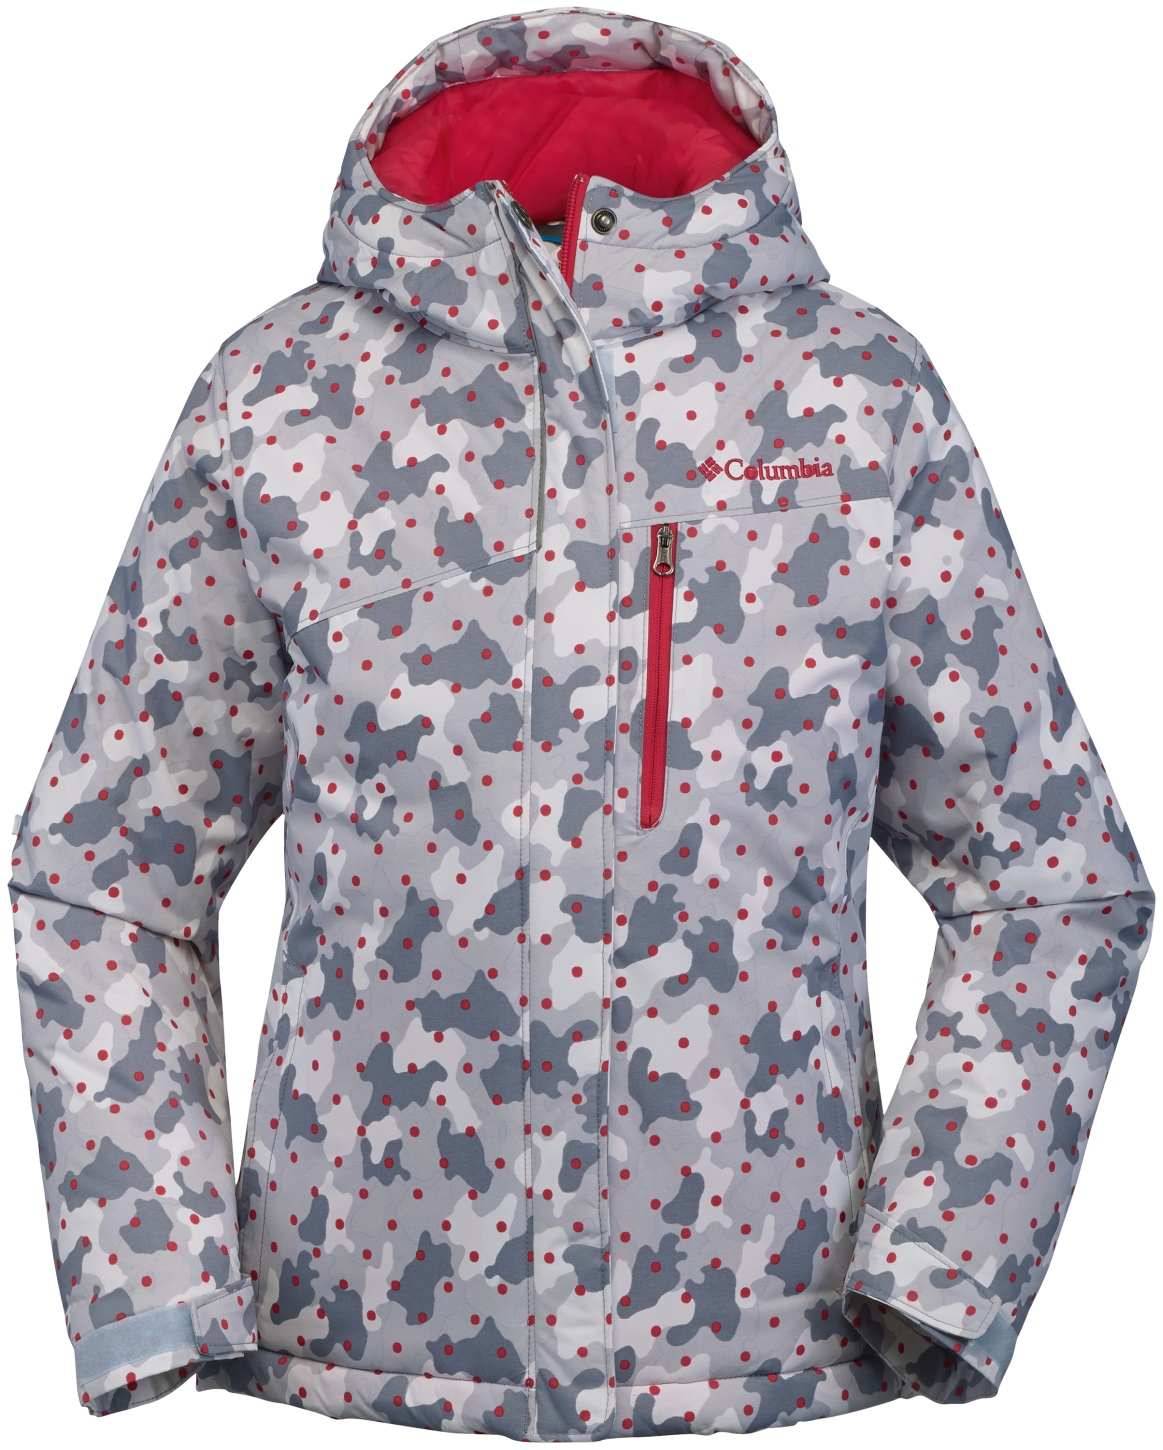 Columbia Girls' Alpine Free Fall Ski Jacket Red Camelia Camo-30